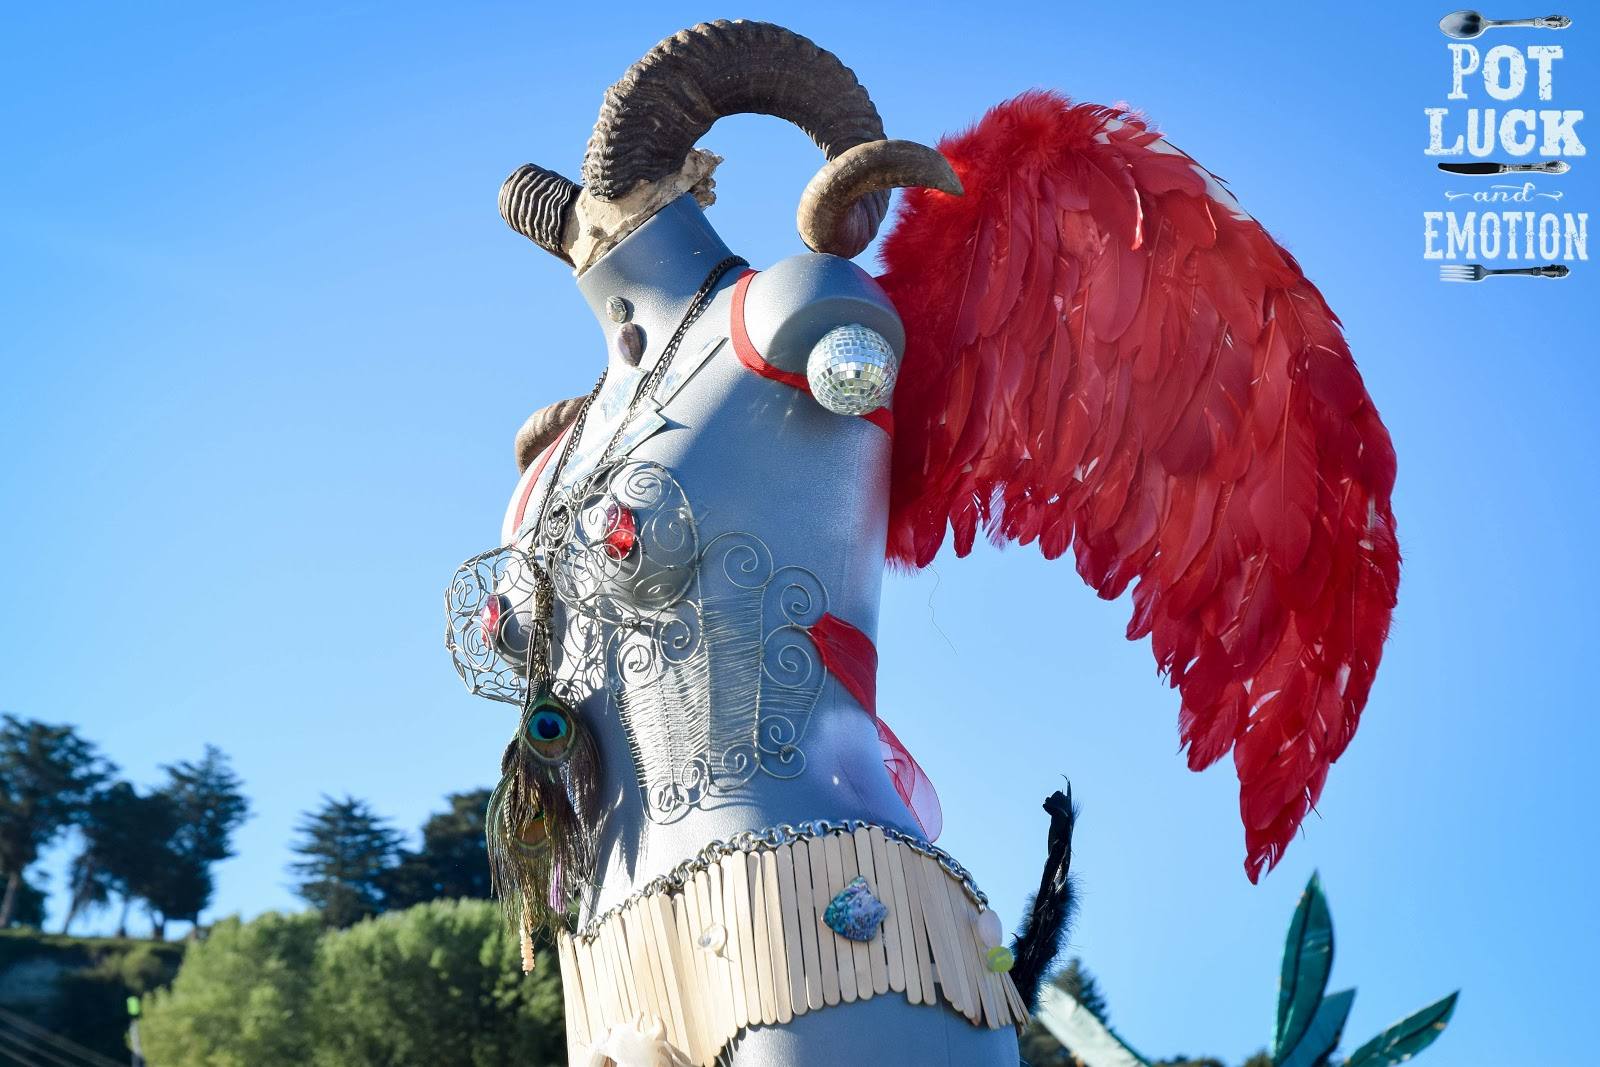 An art piece that is a woman's bodice dressed with feathers, goat horns, and metal adornment.